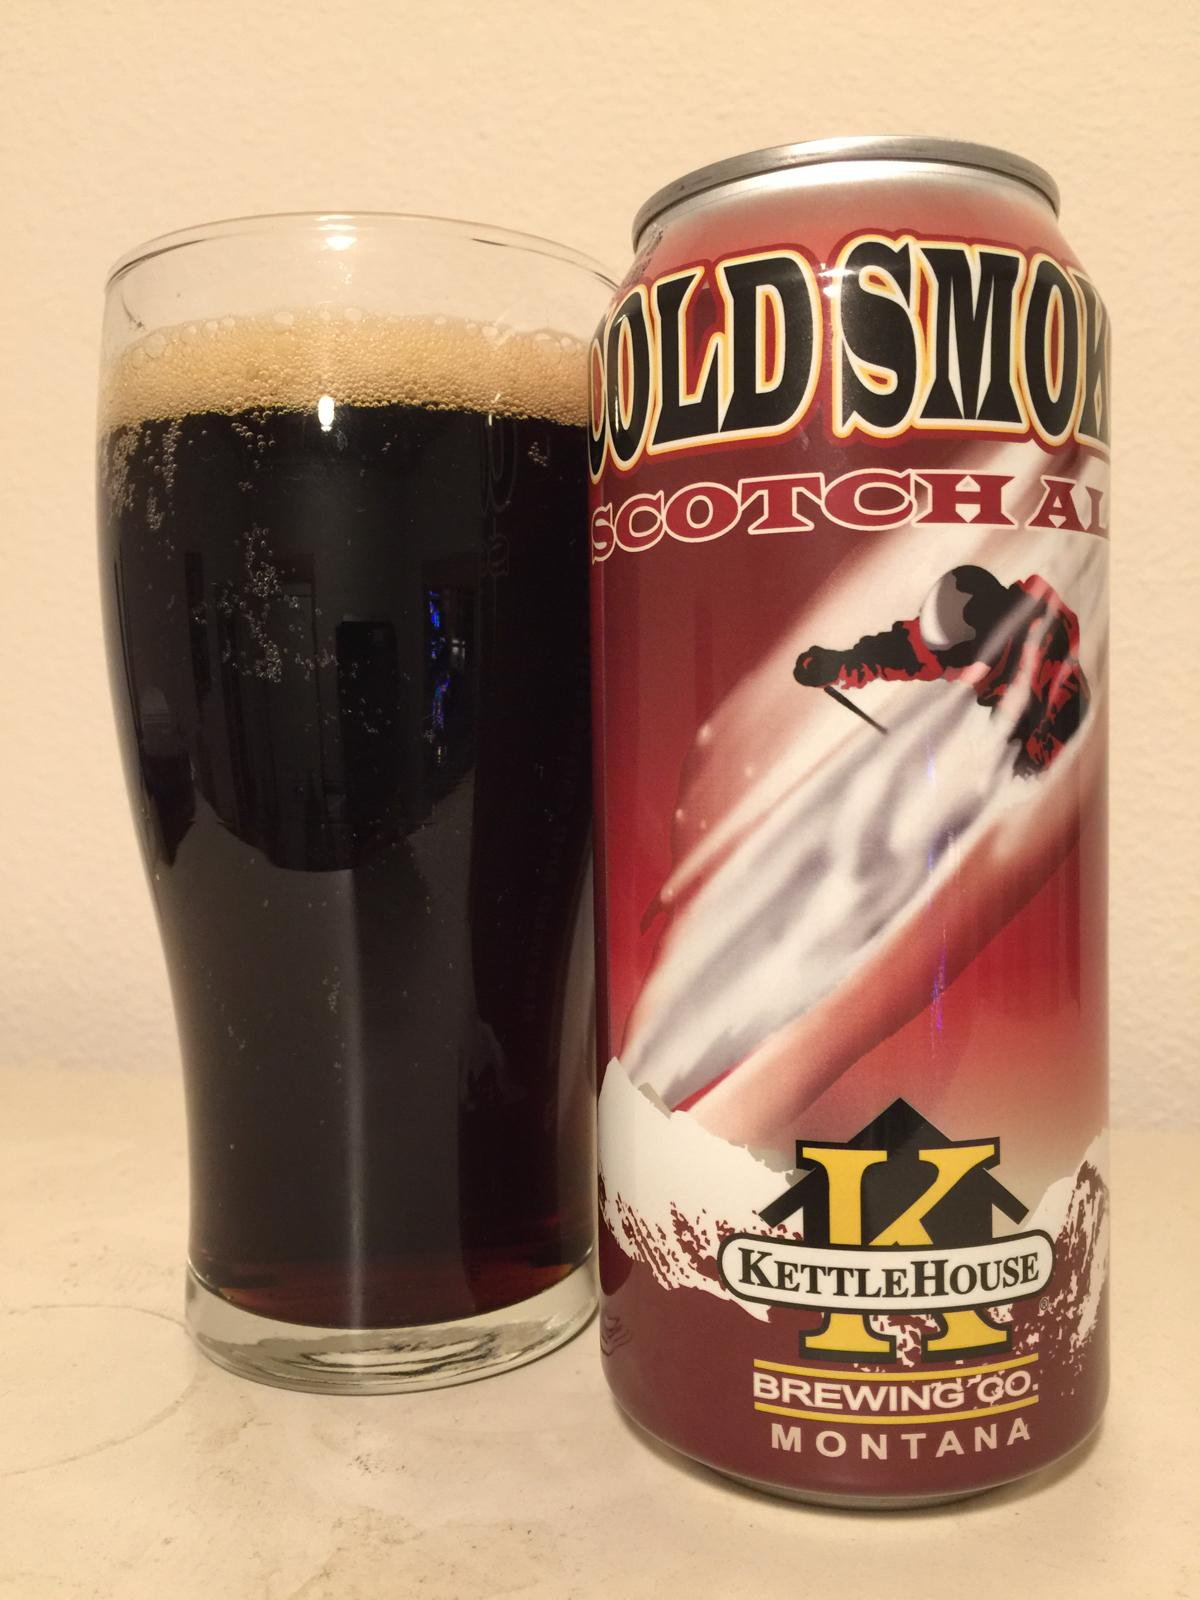 Cold Smoke Scotch Ale